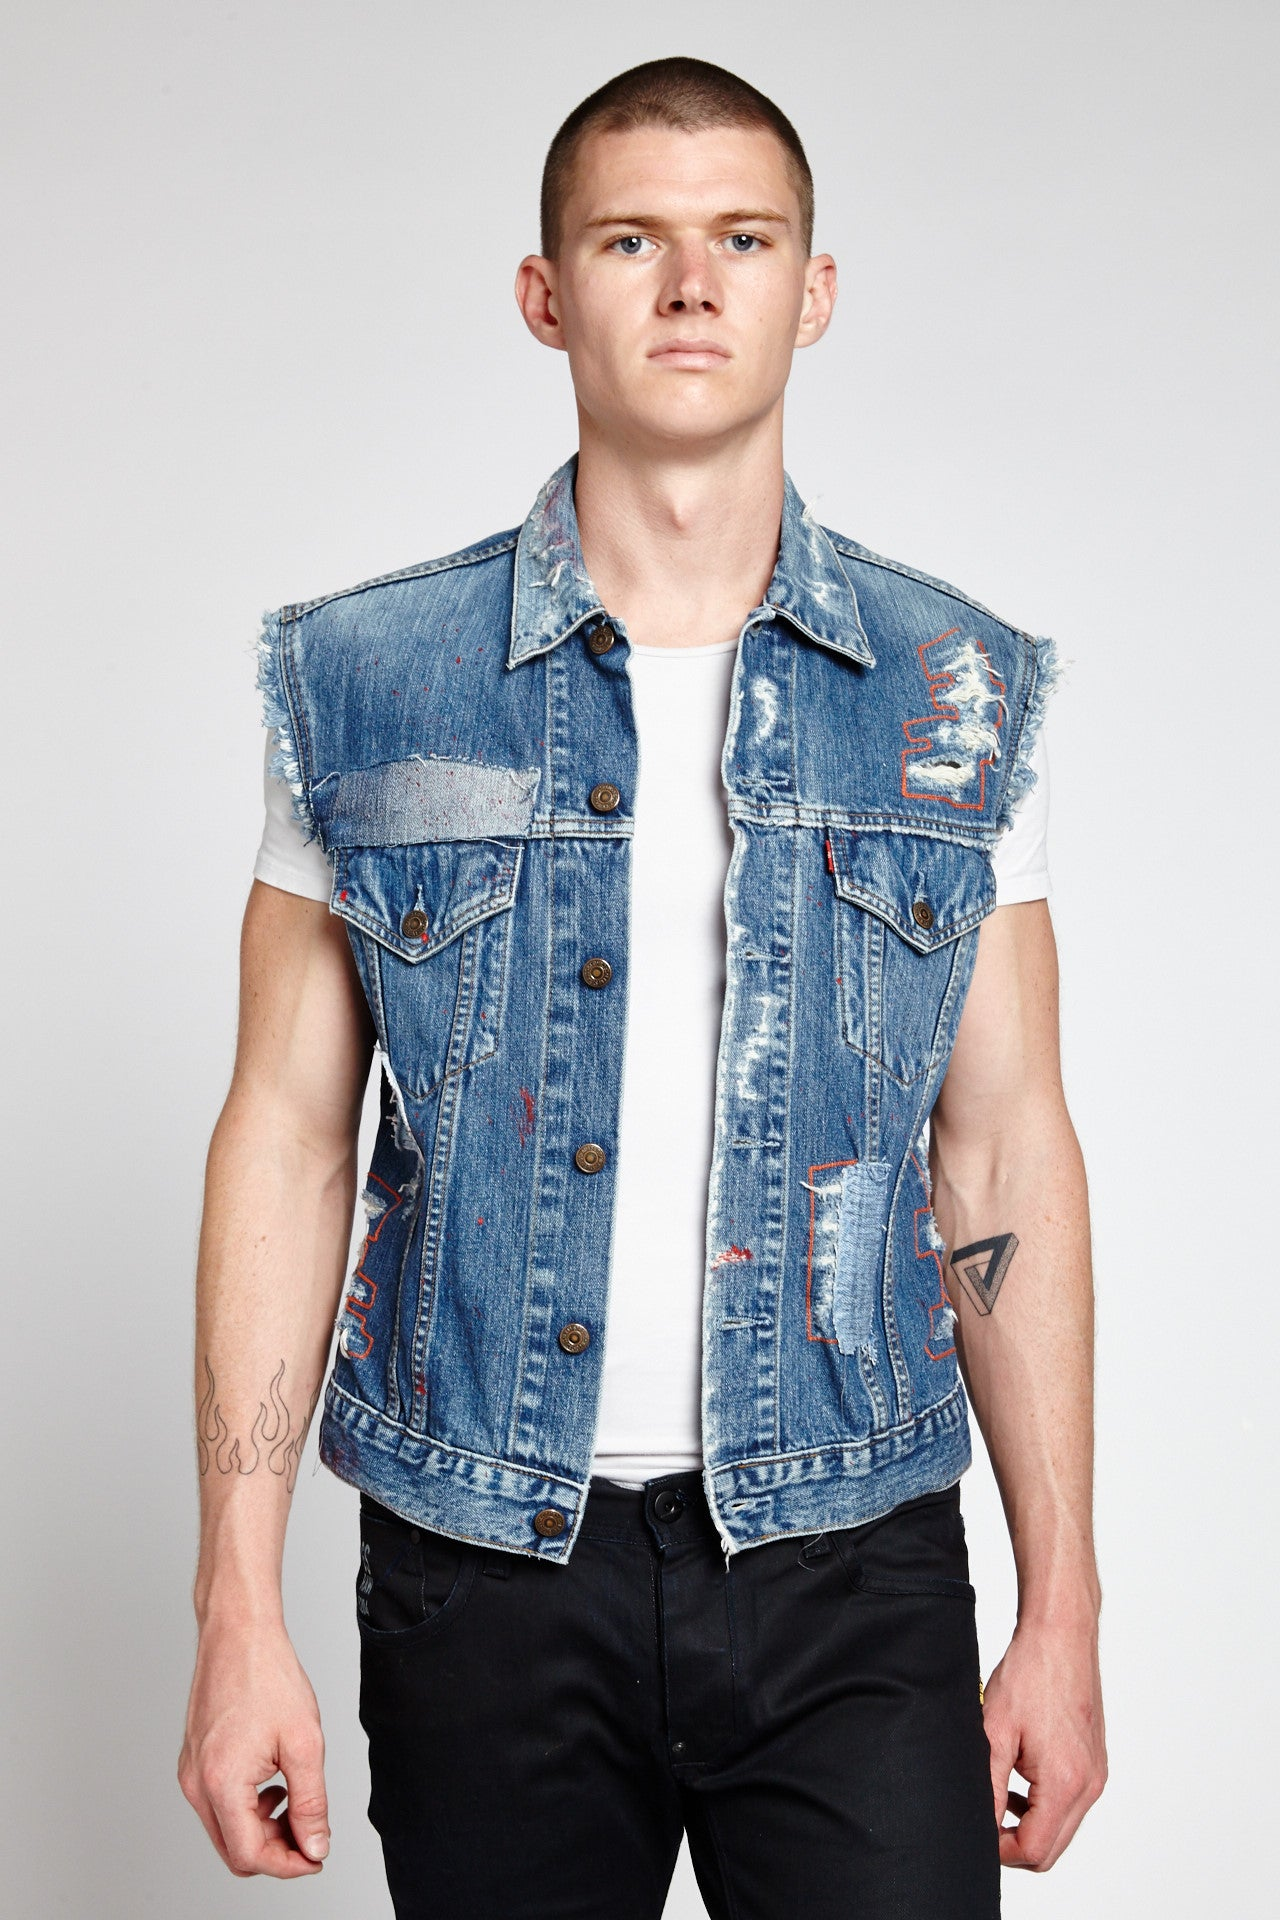 LETTERING SLEEVELESS COTTON FADED BLUE LARGE DENIM VEST-JACKETS-Mundane Official-L-FADED BLUE-Mundane Official